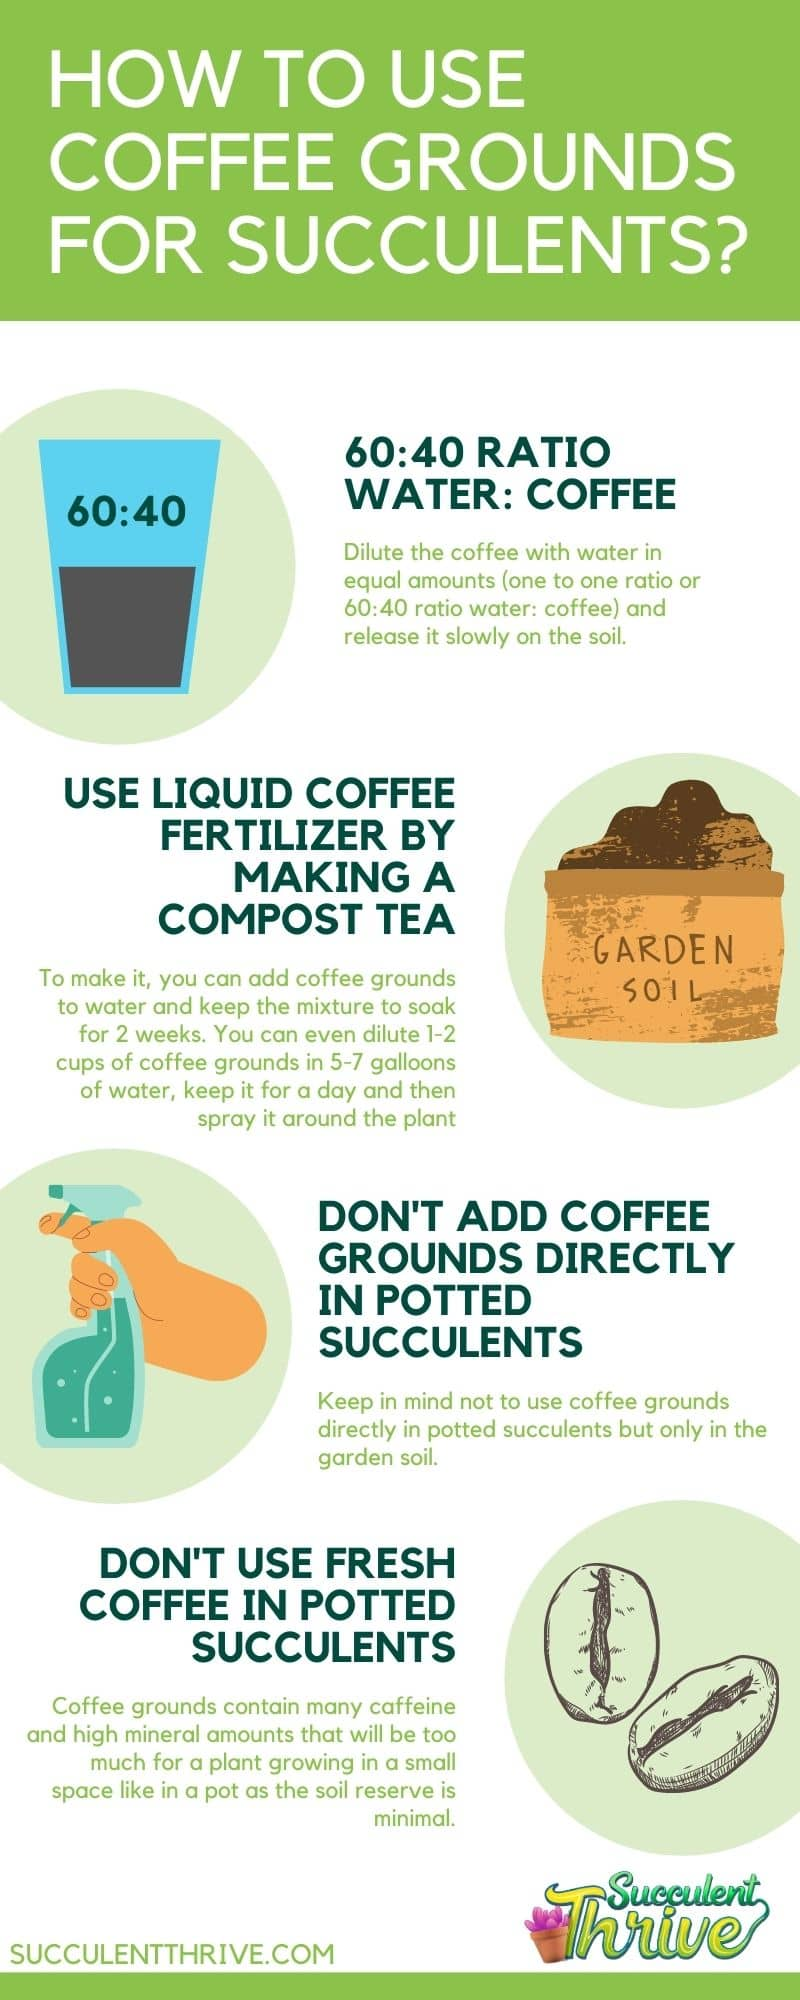 How to Use Coffee Grounds for Succulents Infographic